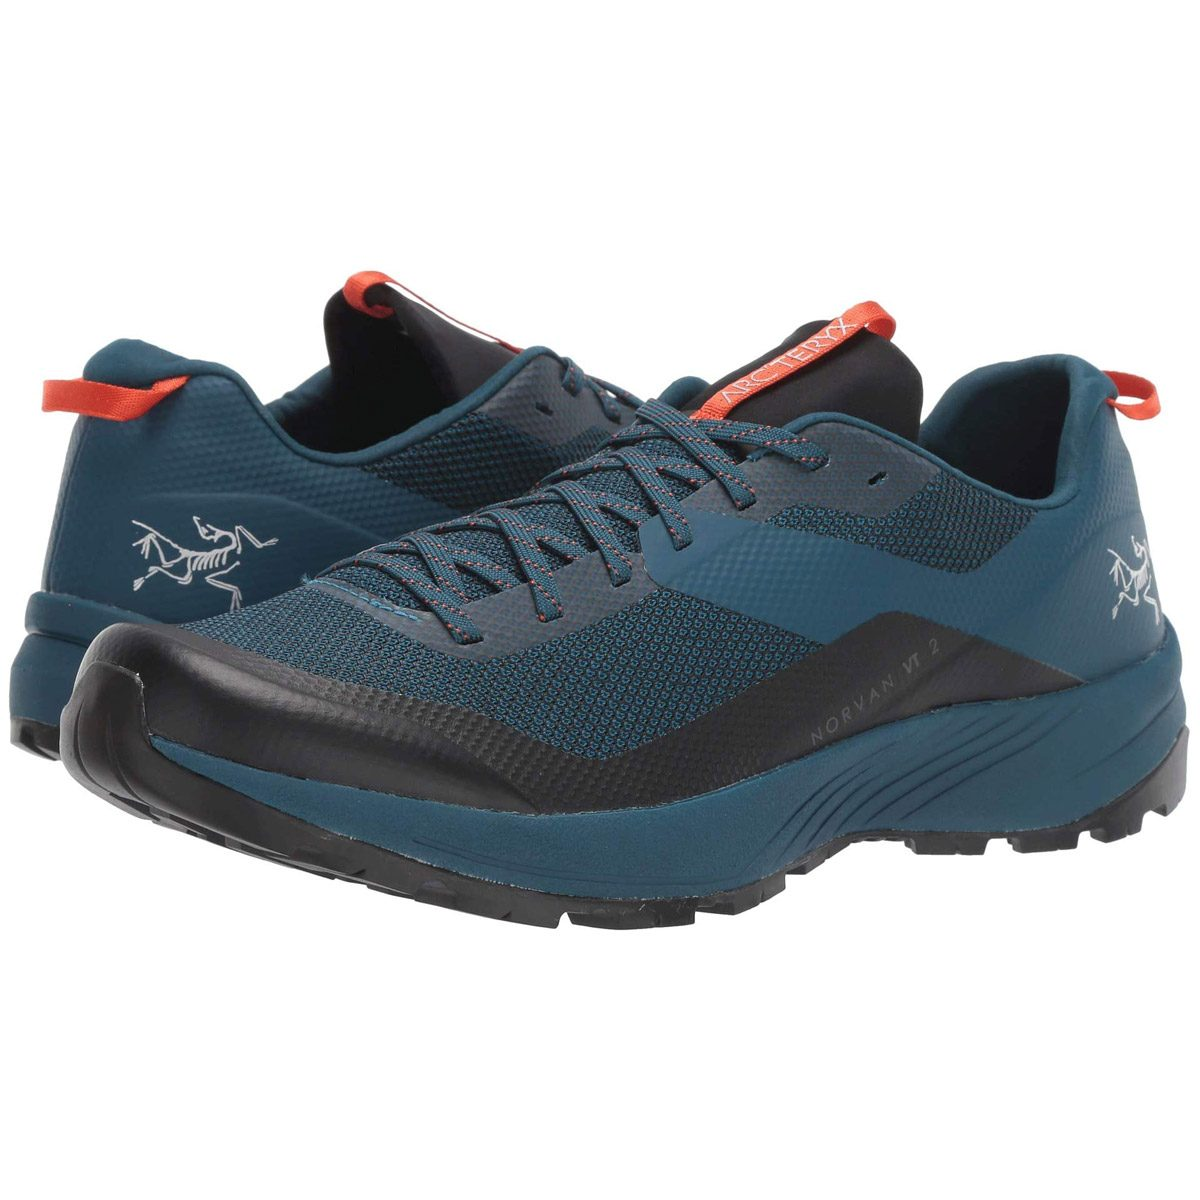 Arc'teryx Norvan VT 2 hiking shoes